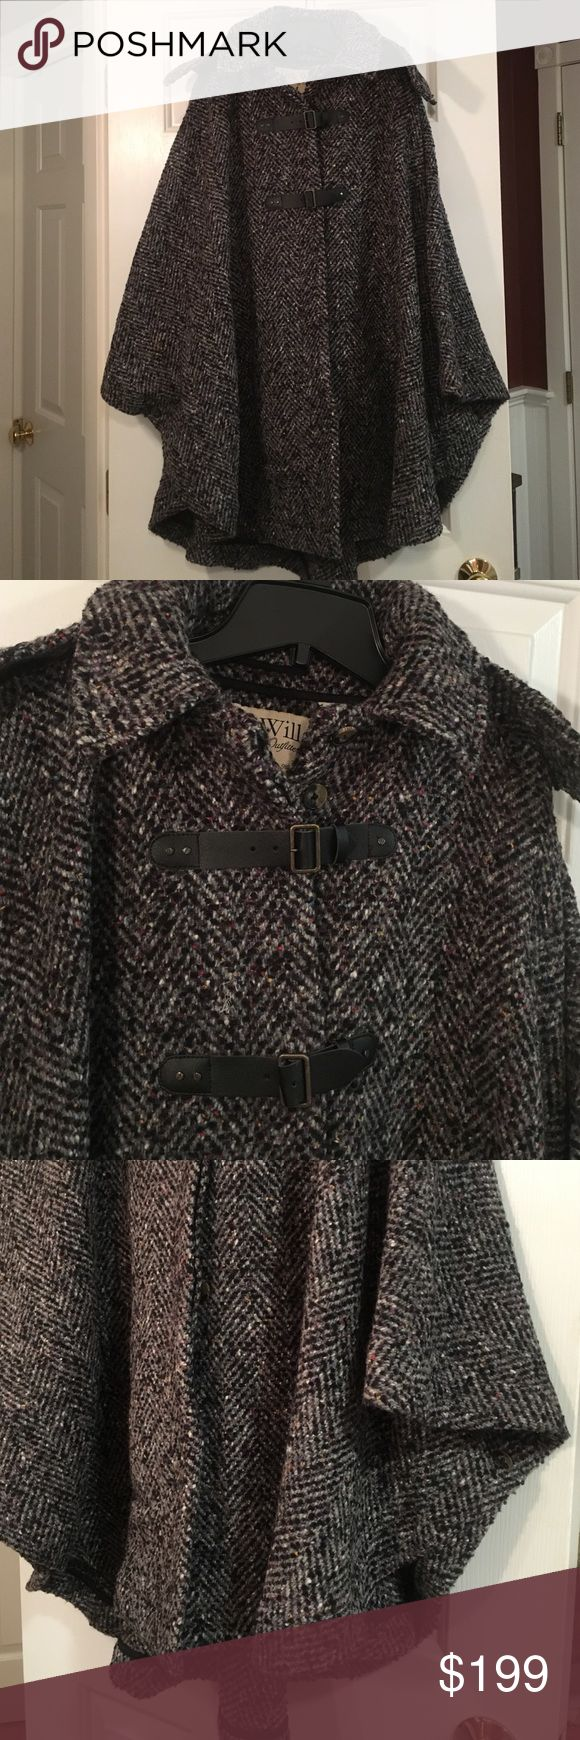 "New Jack Wills charcoal gray tweed cape New Jack Wills charcoal gray wool tweed cape size S/M. This is a gorgeous and substantial cape. It is unlined, has removable hood. Button side for creating arm hole and button front with leather fasteners as well. This was bought two years ago and is too big for me now. It has been stored and never worn except to try on twice. No tags. It is a heavy cape. I t seems to be best for a medium. May even fit a large well. I am 5'2"" and slight build. Charcoal…"